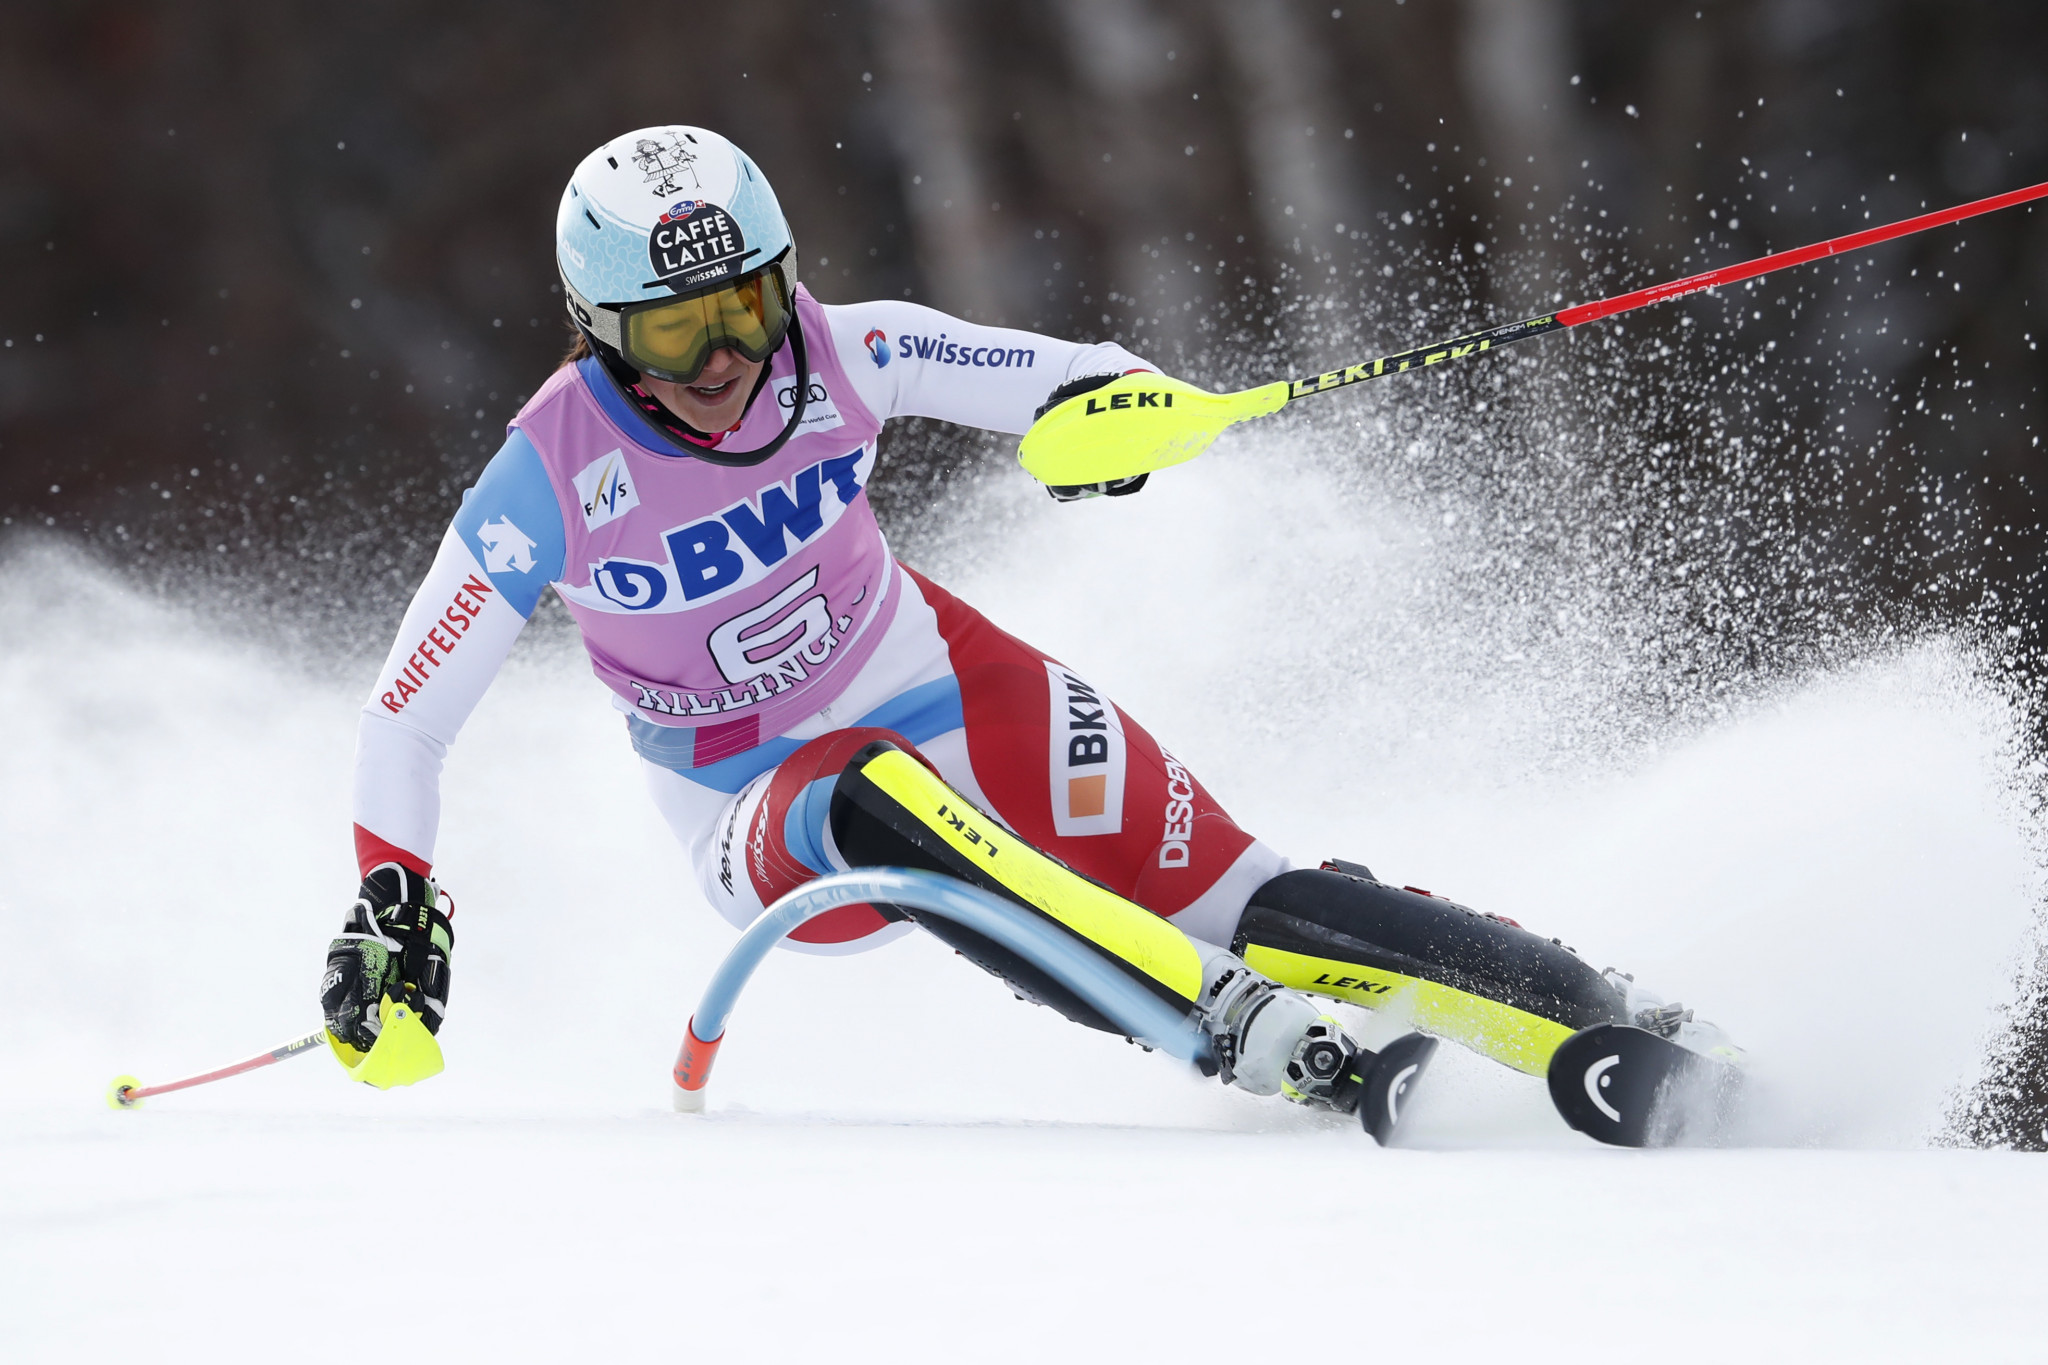 Two-time Alpine combined world champion Holdener suffers fractured leg